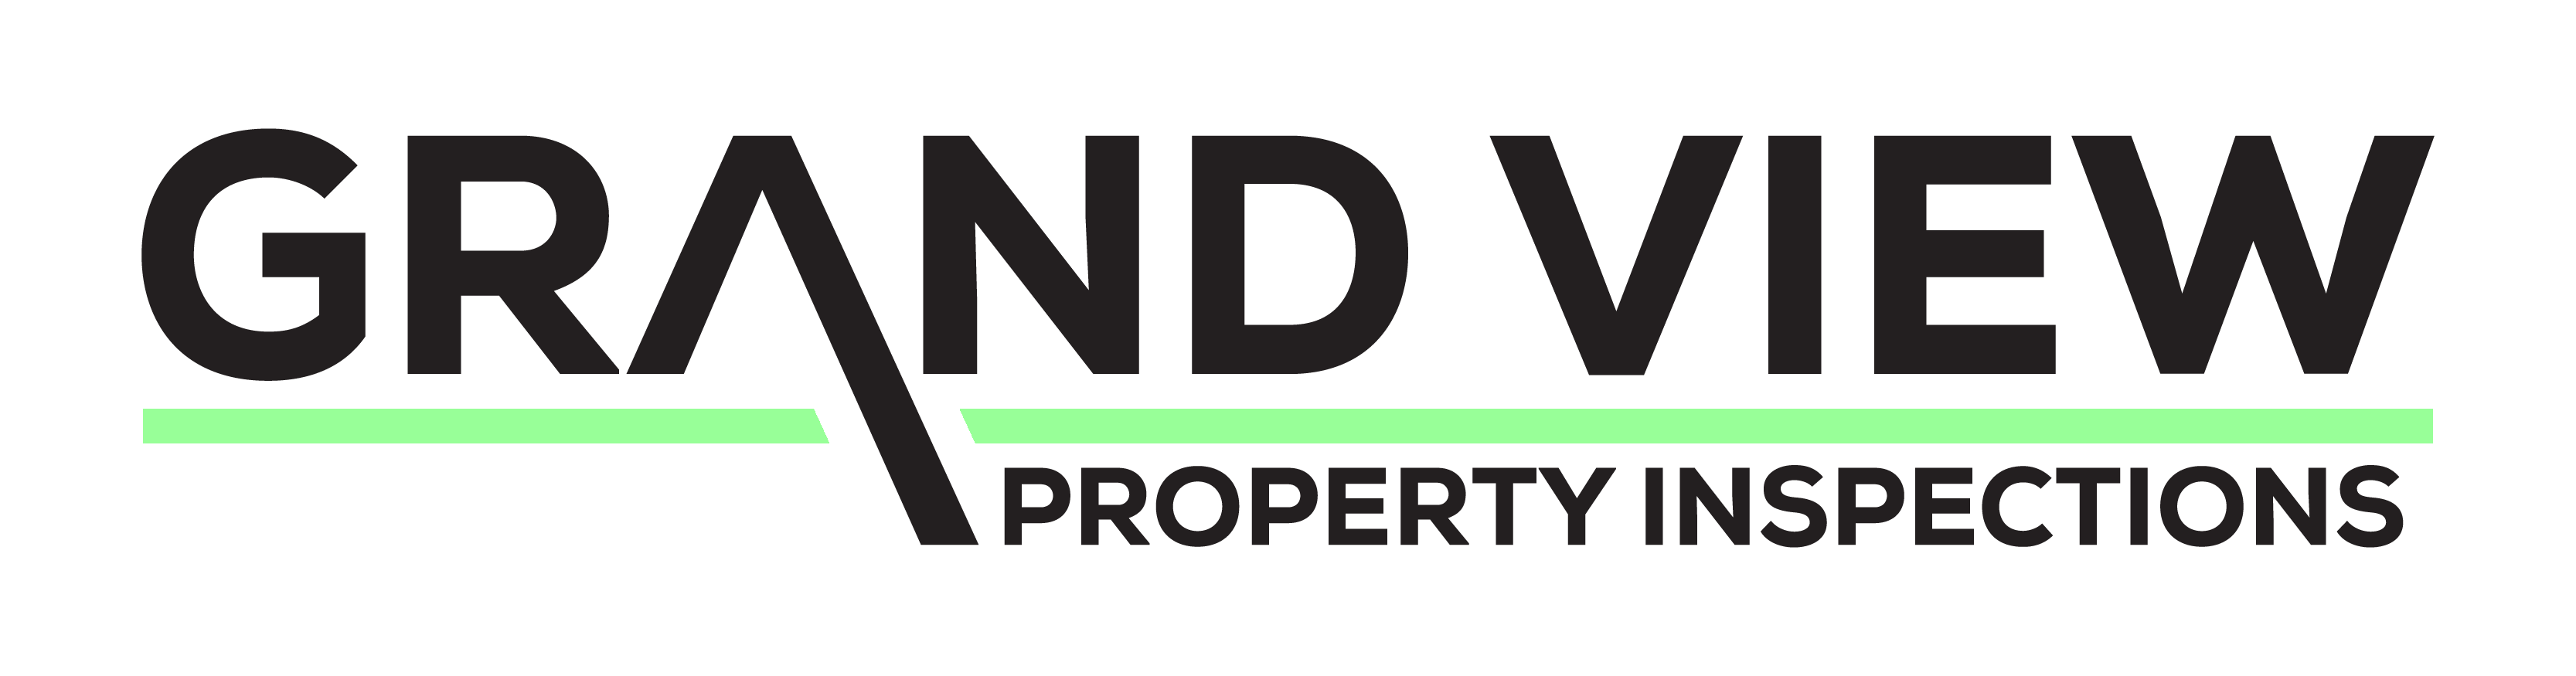 Grand View Property Inspections